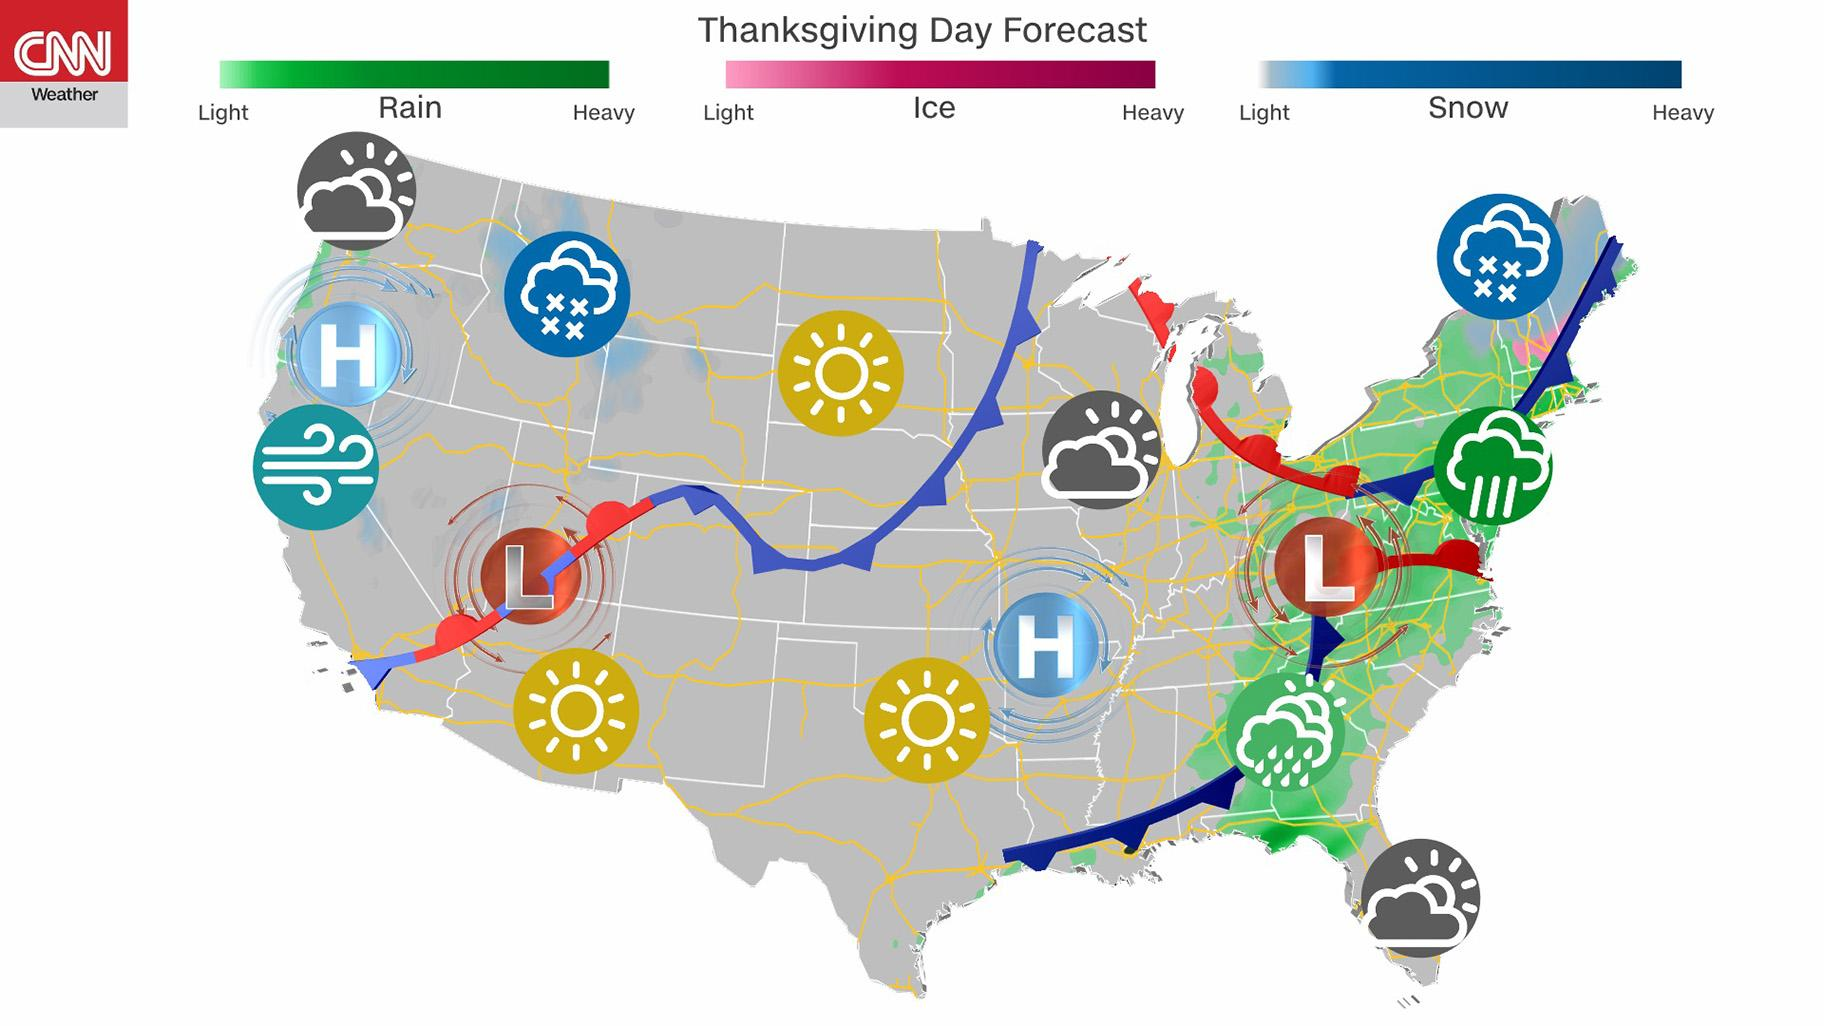 Thanksgiving weather forecast: November is often the gloomiest time of year in the Northwest, and the region will live up to those soggy expectations this week. (Credit: CNN)